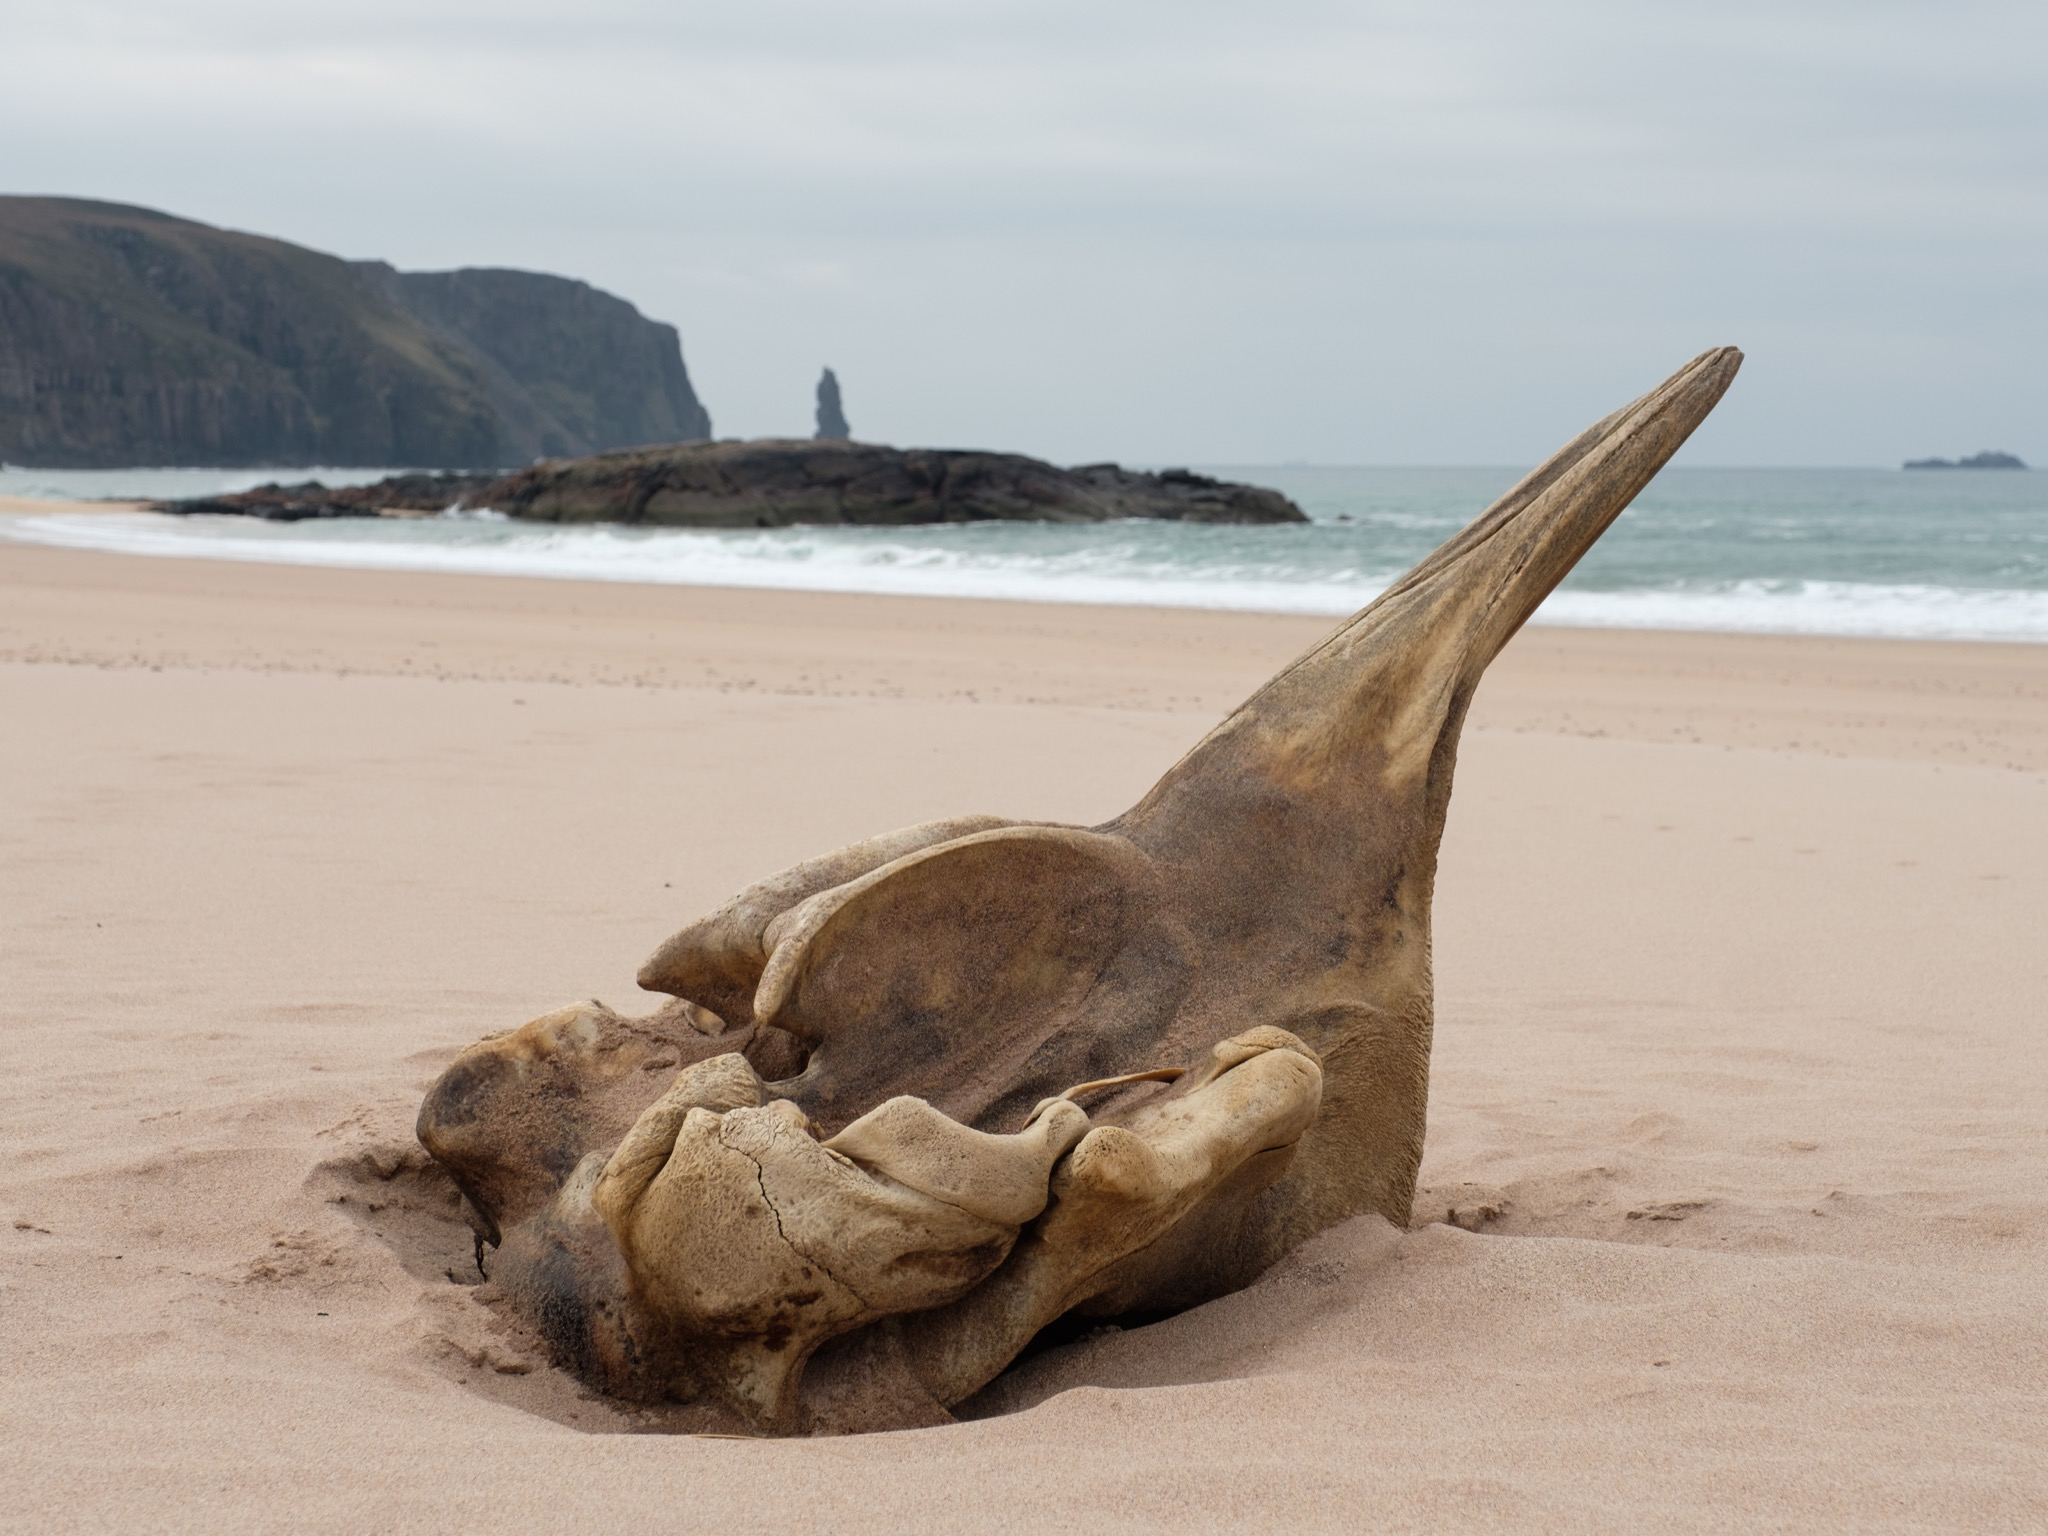 This whale skull on Sandwood Bay prompted a bit of soul-searching.